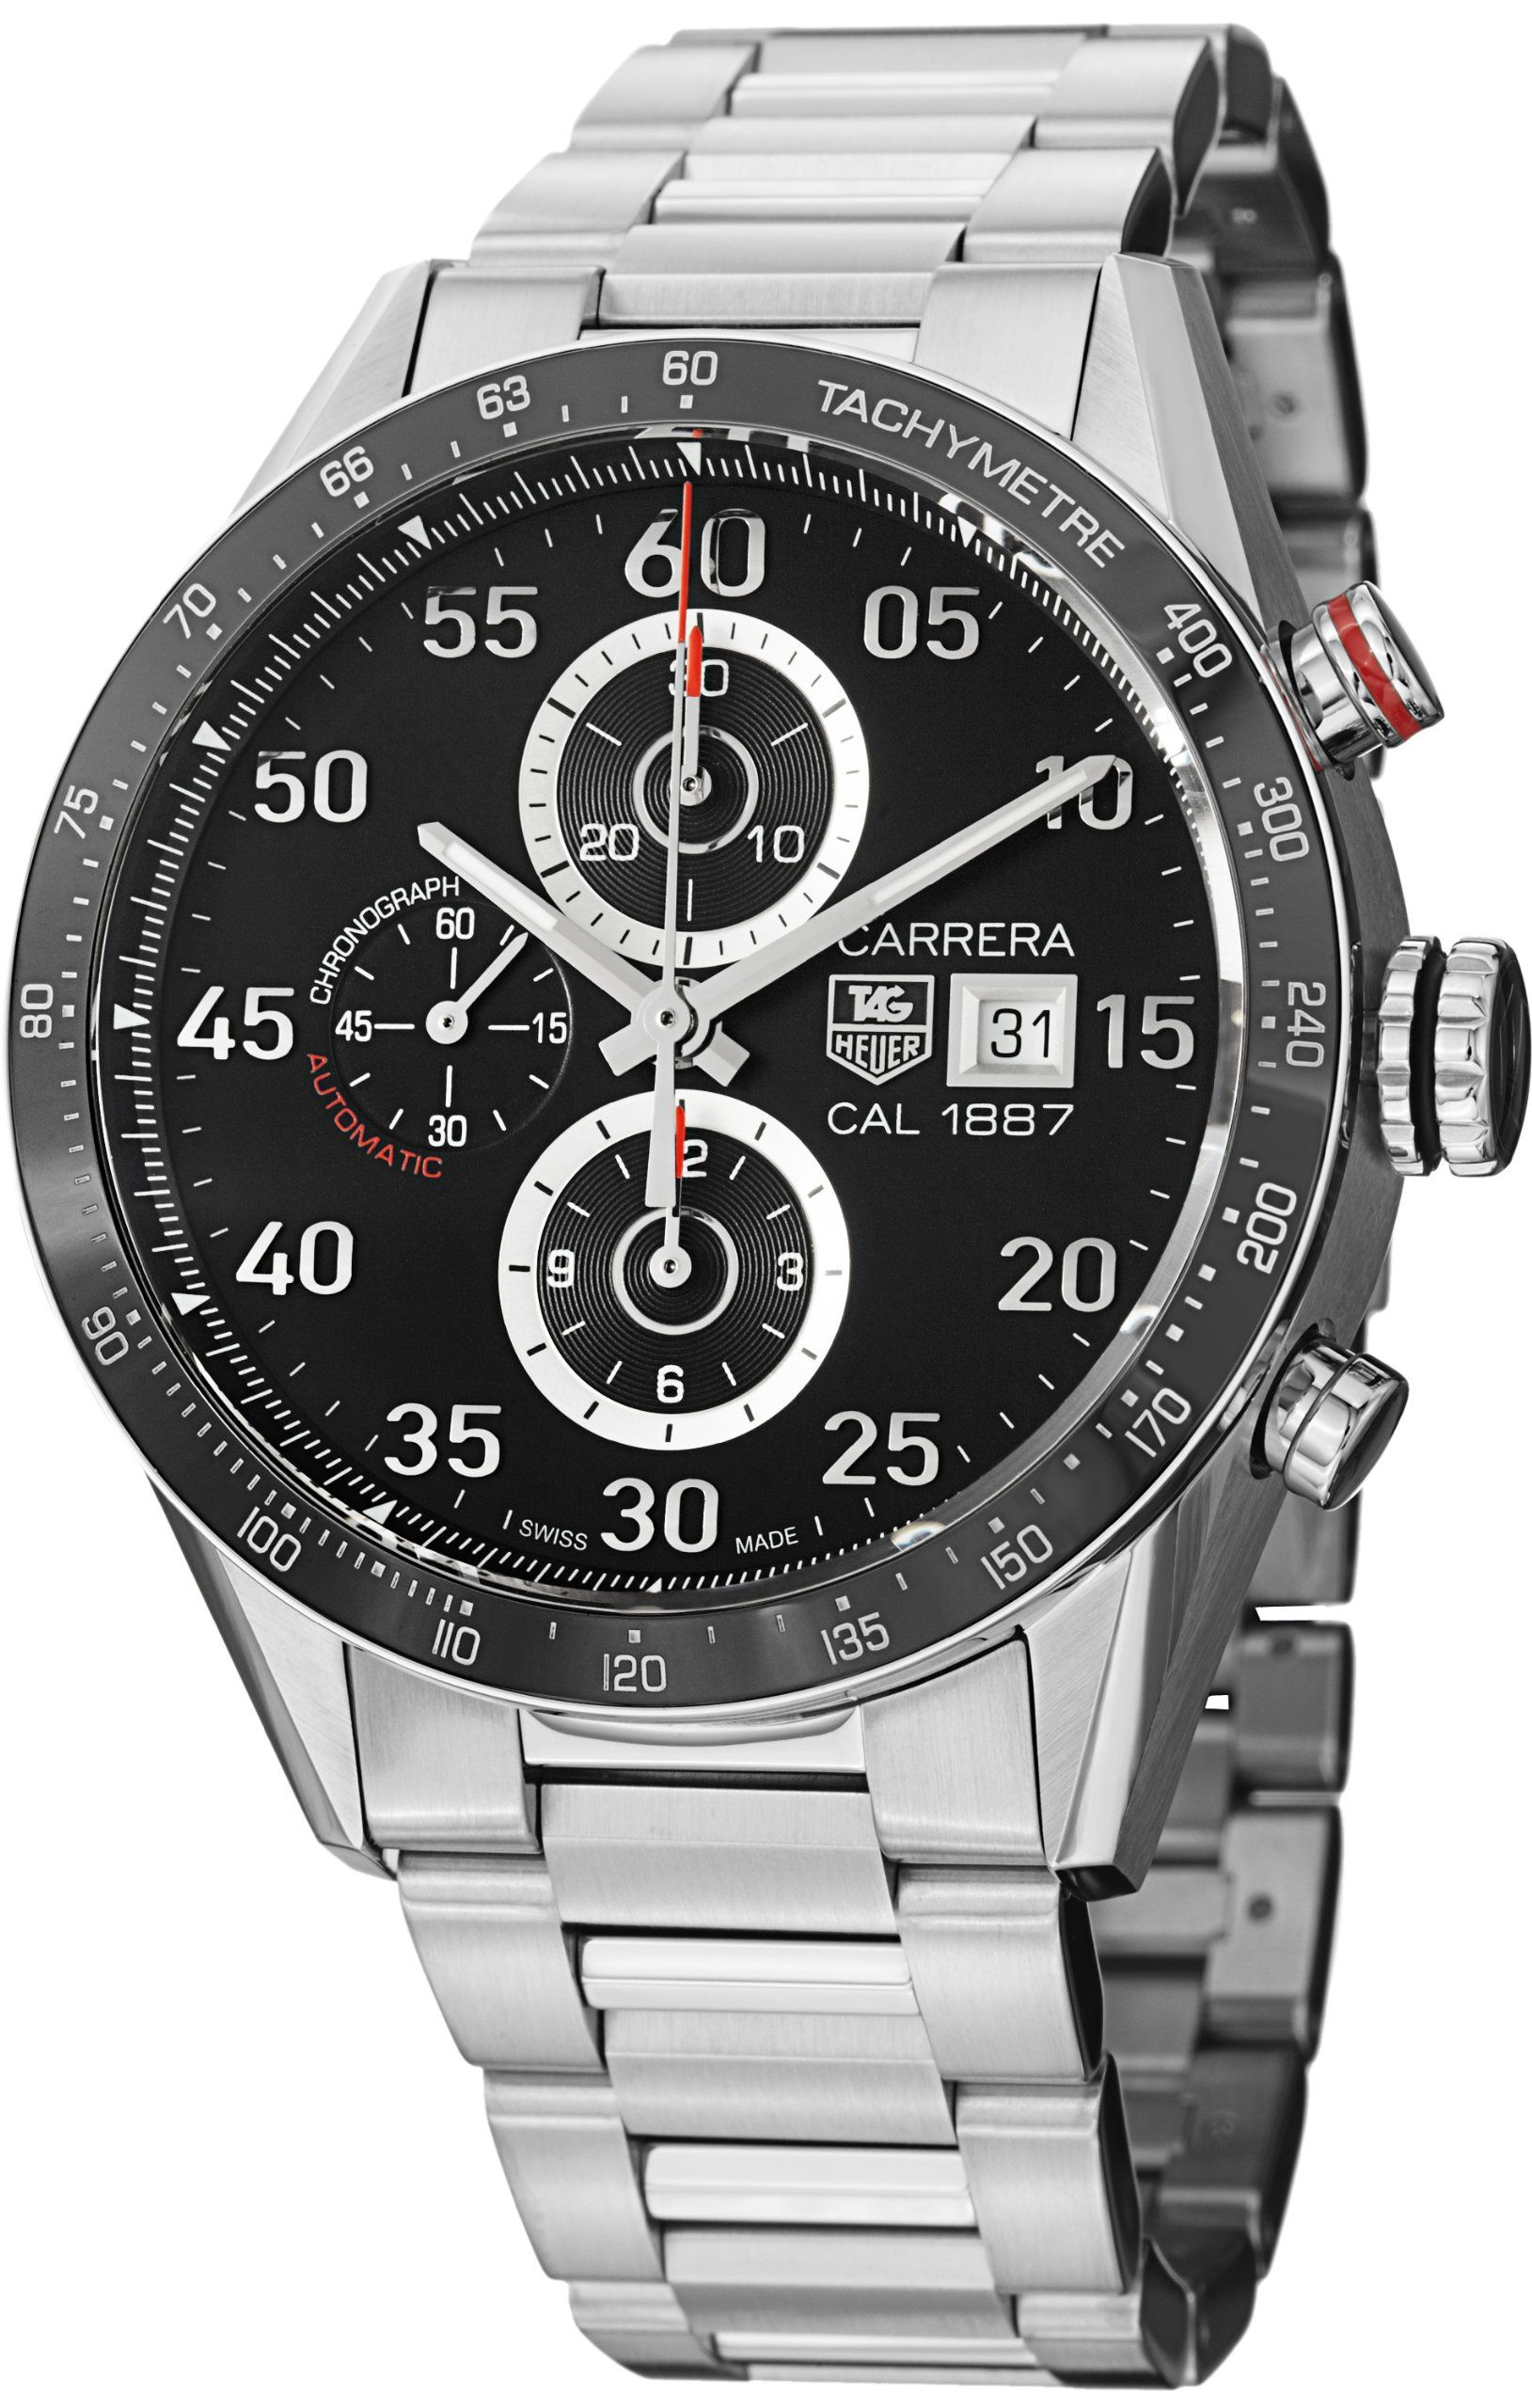 d6c47719526 Tag Heuer Carrera Black Dial Stainless Steel Automatic Chronograph Mens  Watch